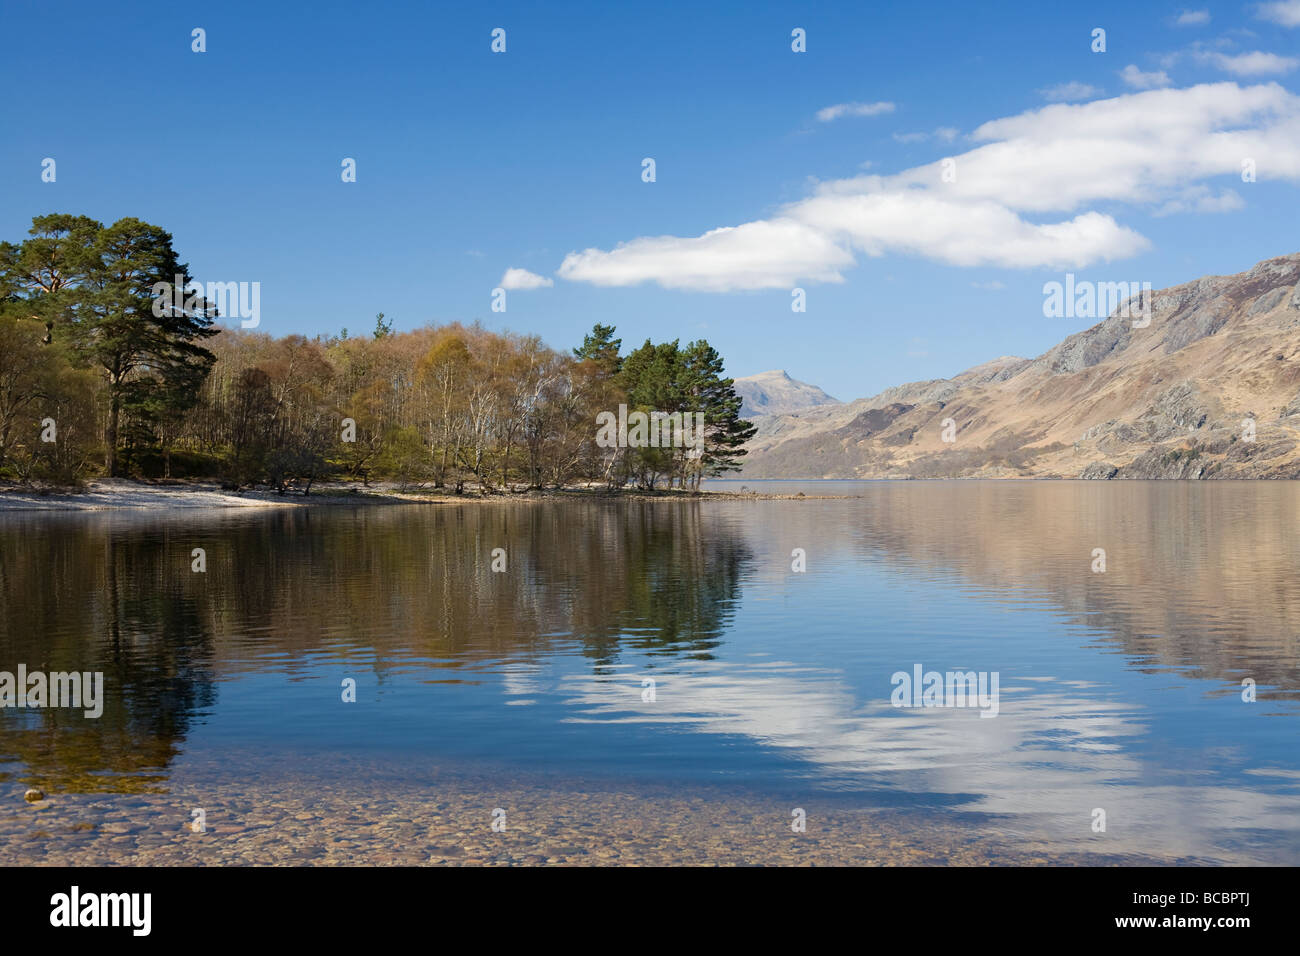 Sunny Day by beautiful Loch Maree, Ross-shire, Scotland - Stock Image